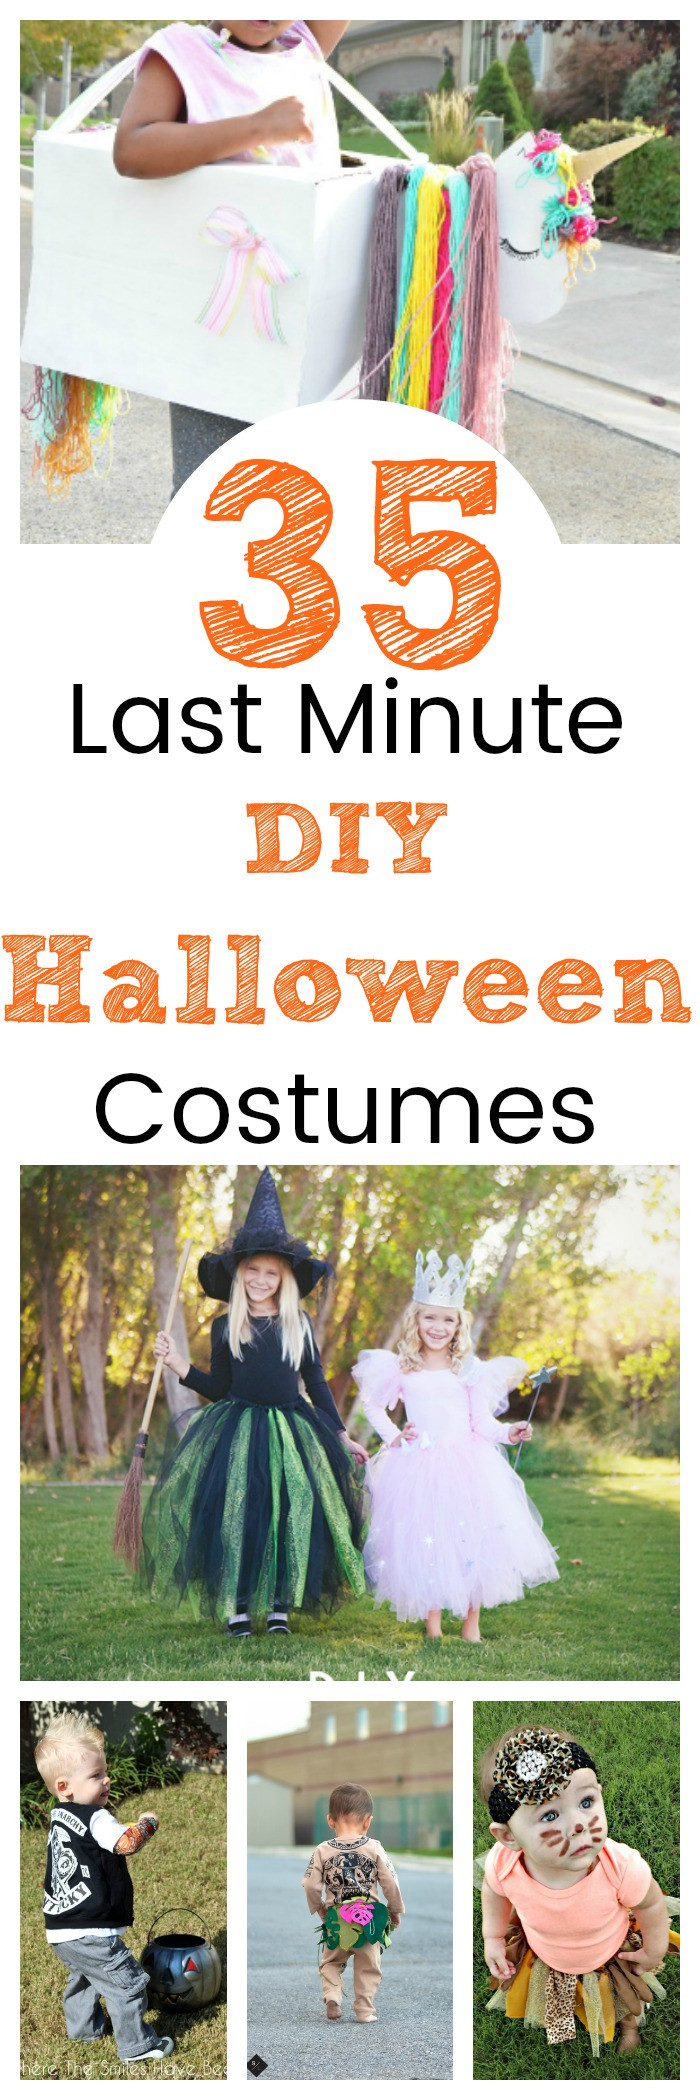 Best ideas about DIY Last Minute Costumes . Save or Pin 35 Last Minute DIY Halloween Costumes Now.